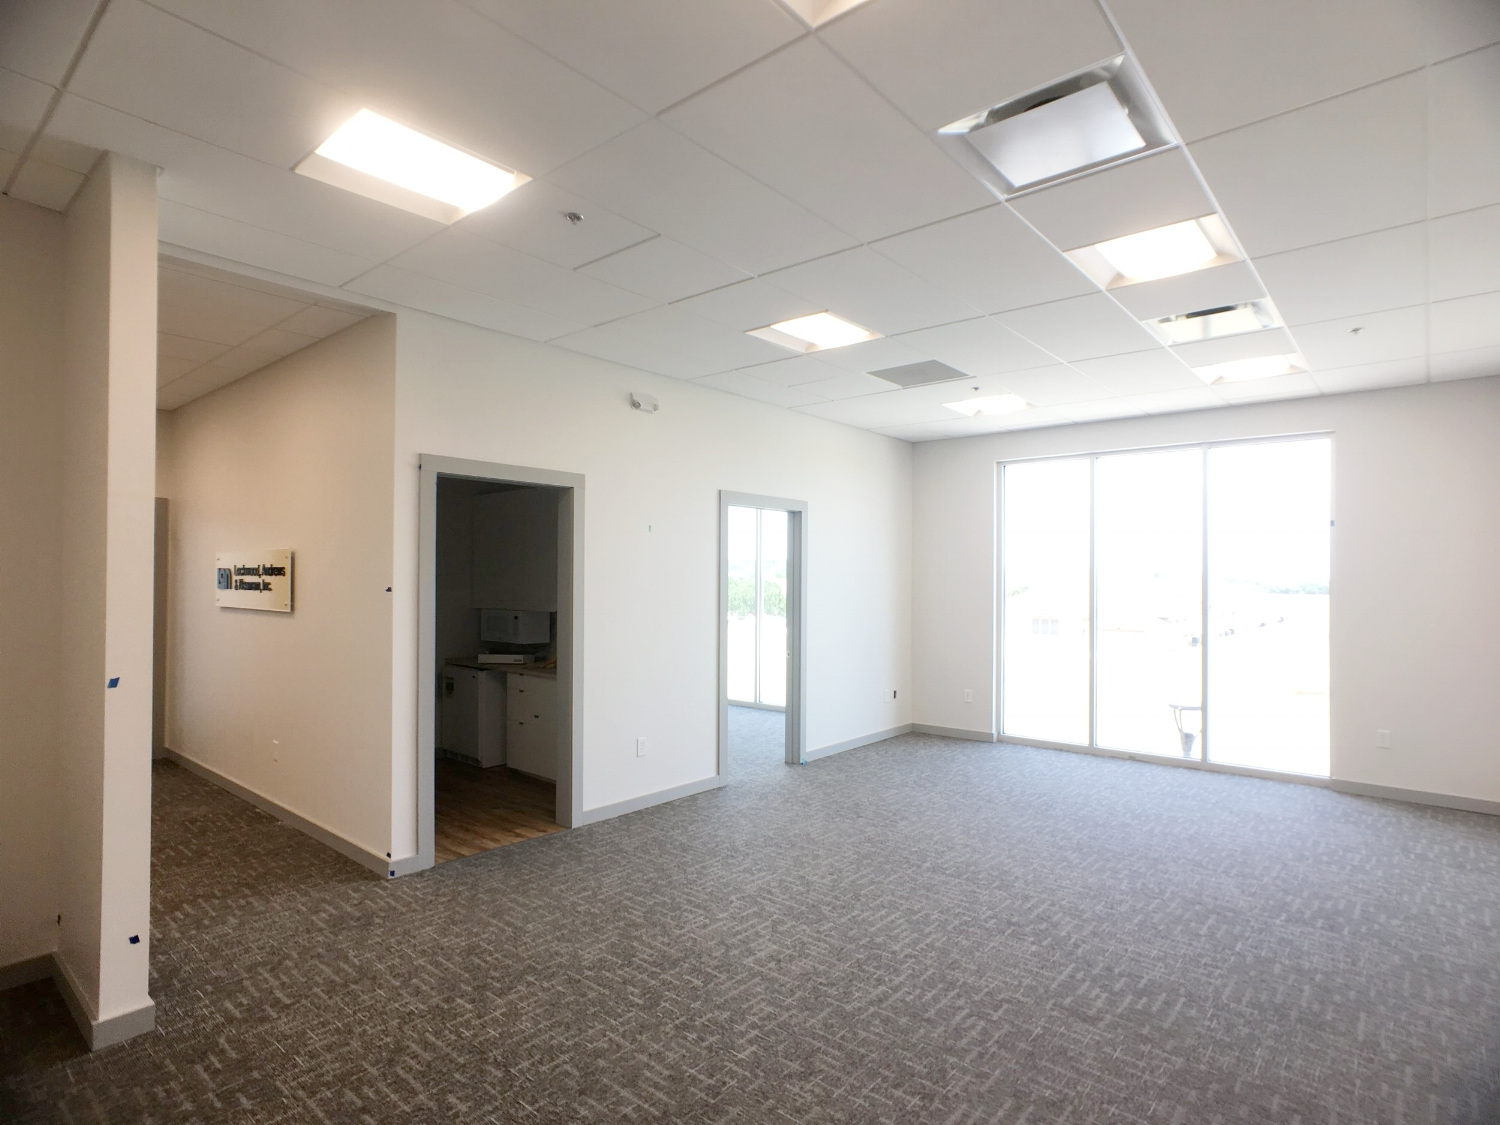 Open office to private office and break room